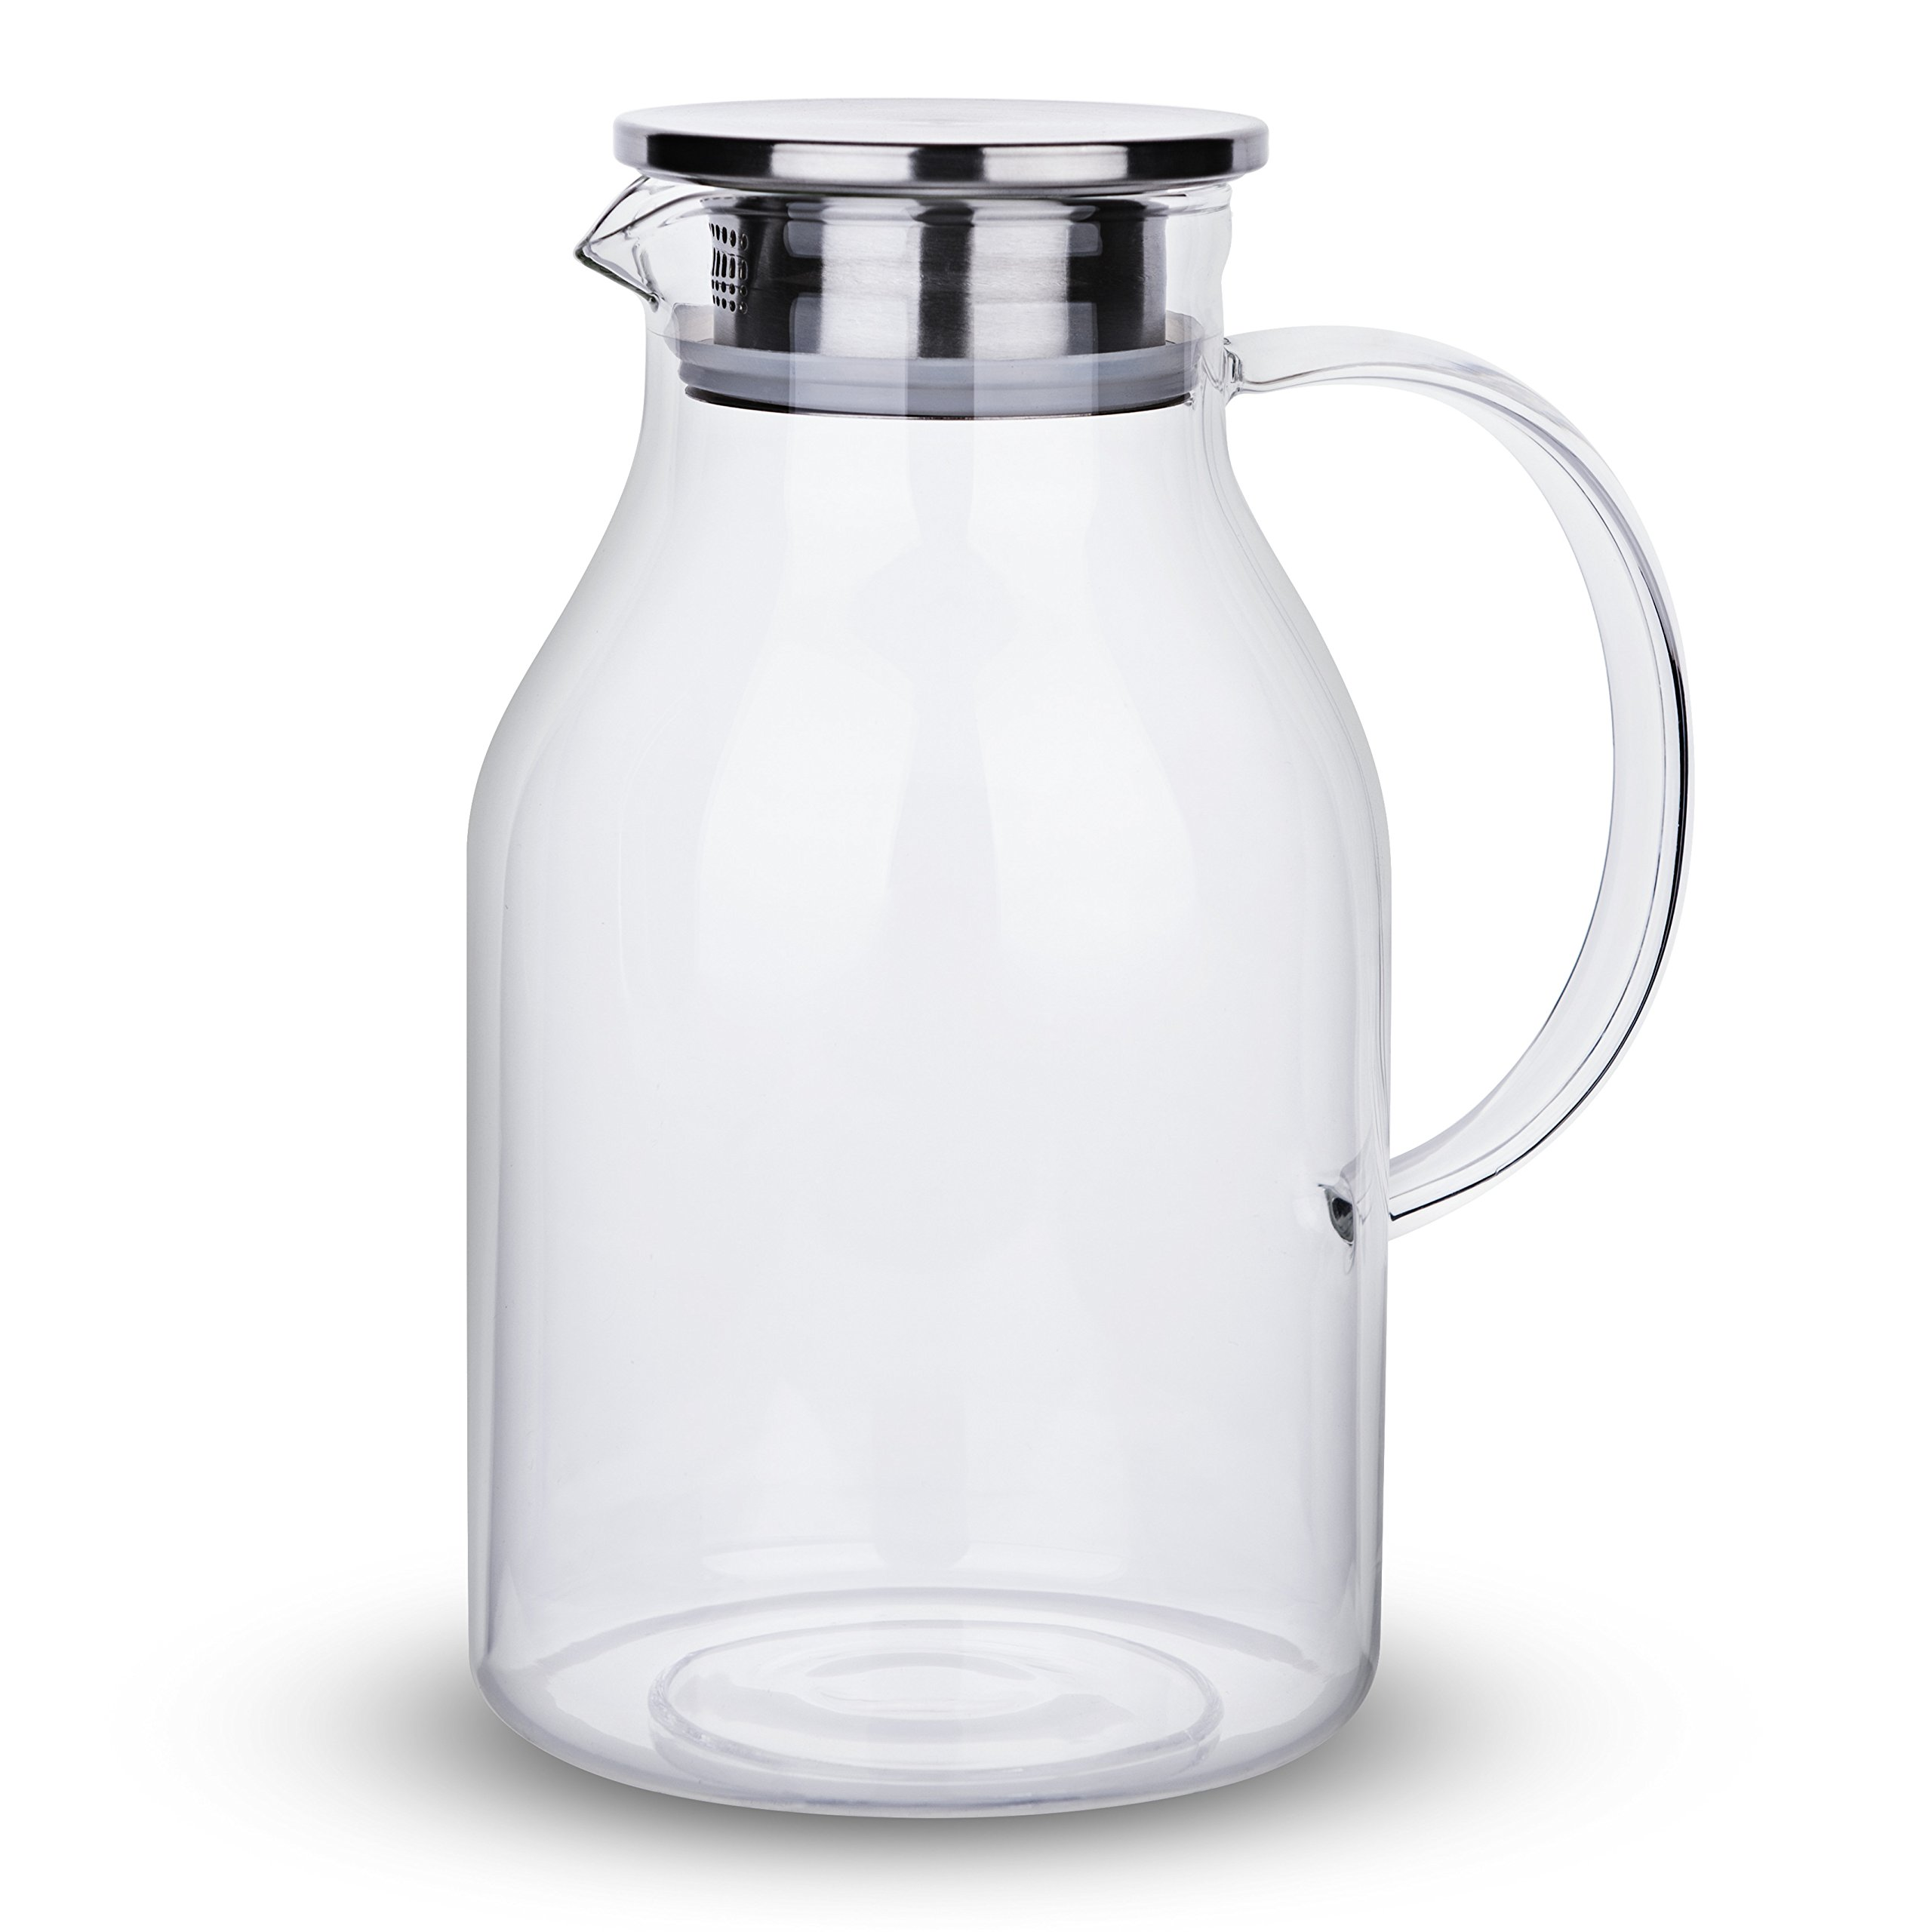 68 Ounces Glass Pitcher with Lid, Water Jug for Hot/Cold Water, Ice Tea and Juice Beverage by Karafu (Image #2)